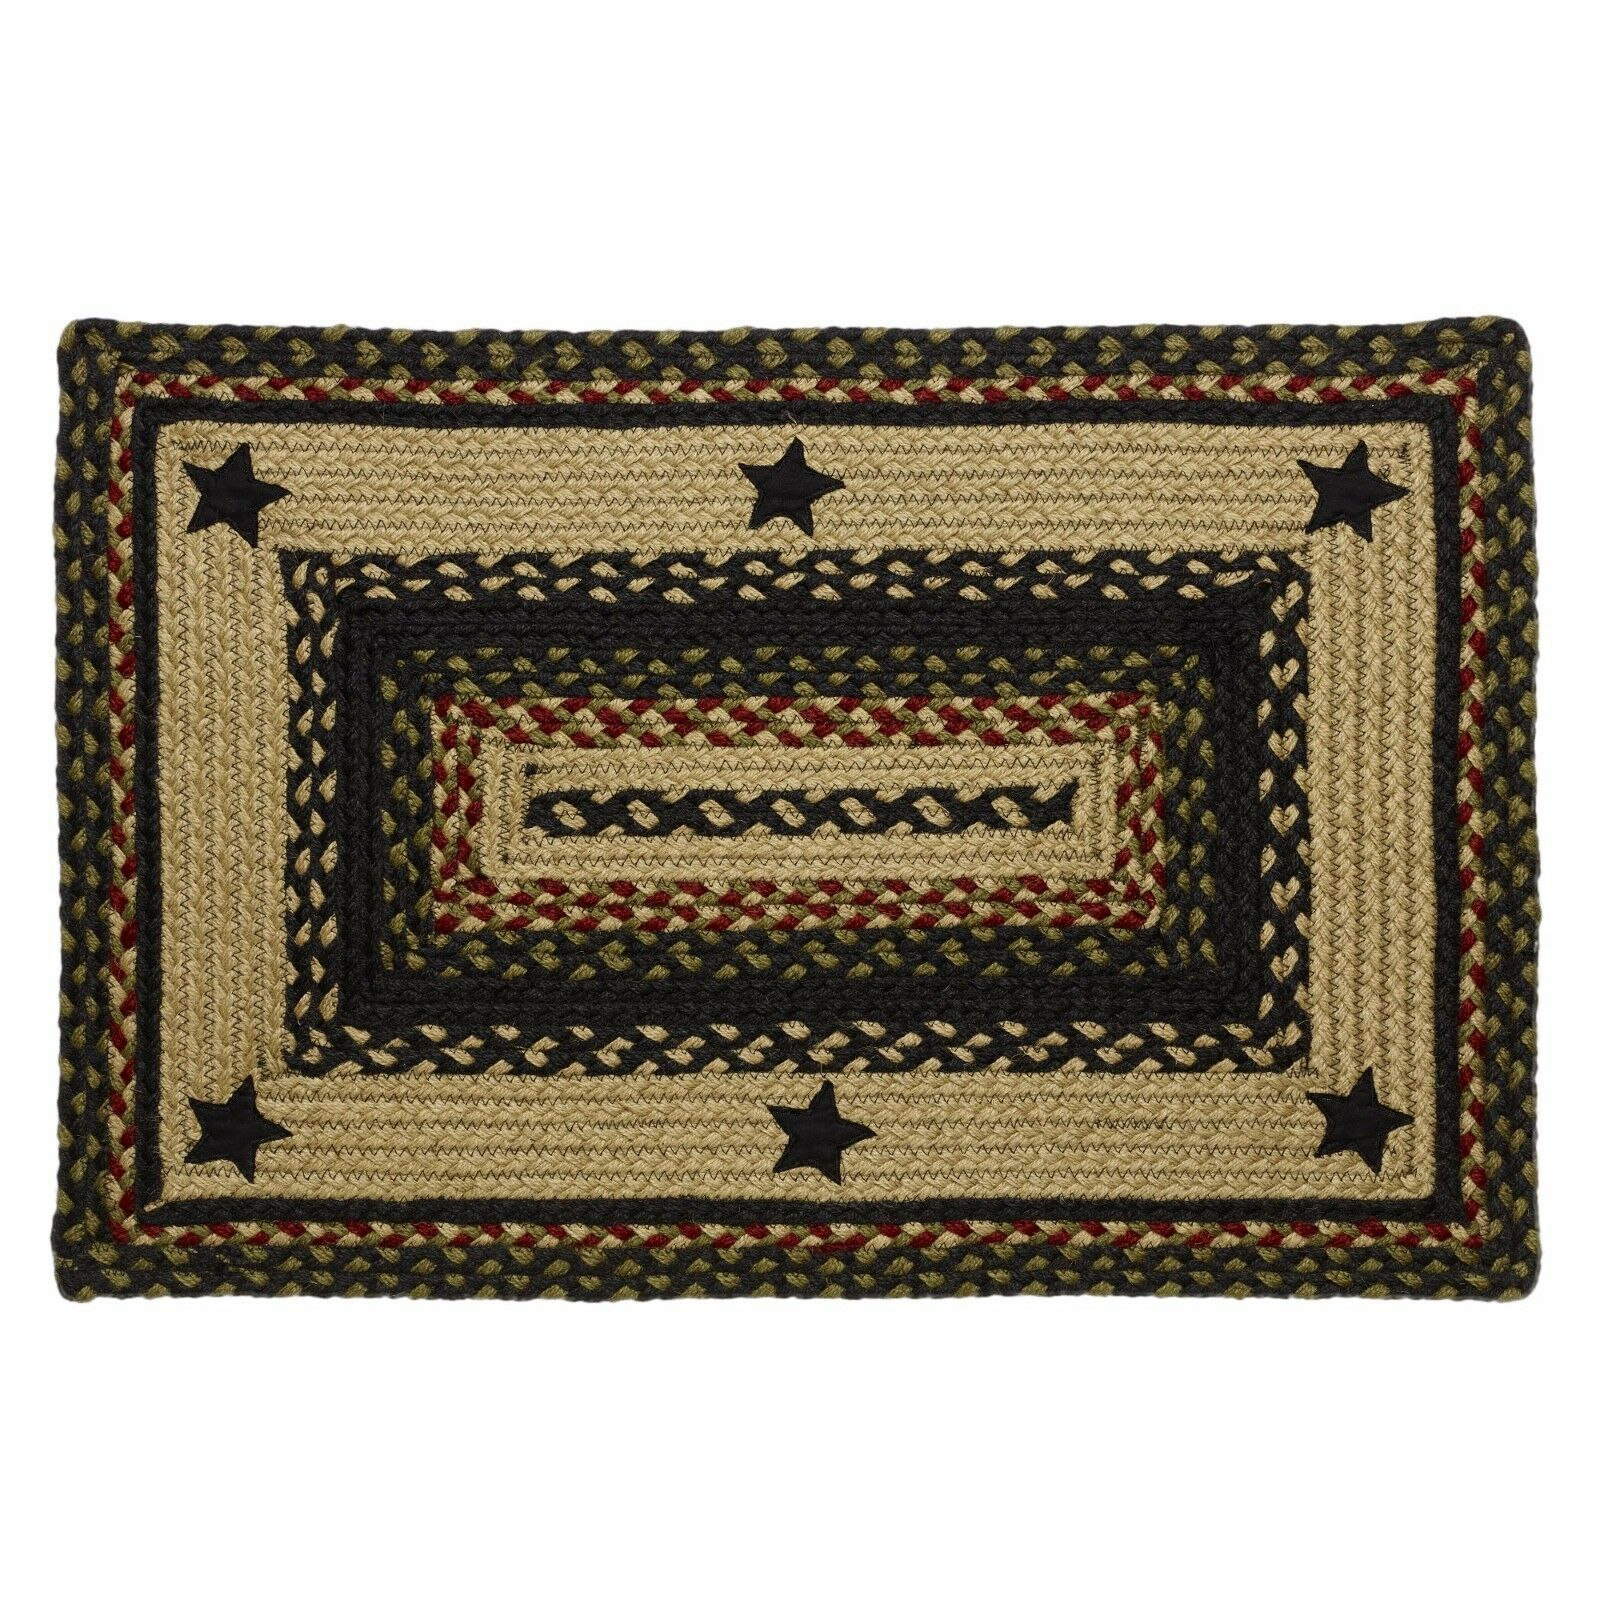 ihf home decor retailers ihf home decor 27 quot x 48 quot braided area rug rectangle floor 11566